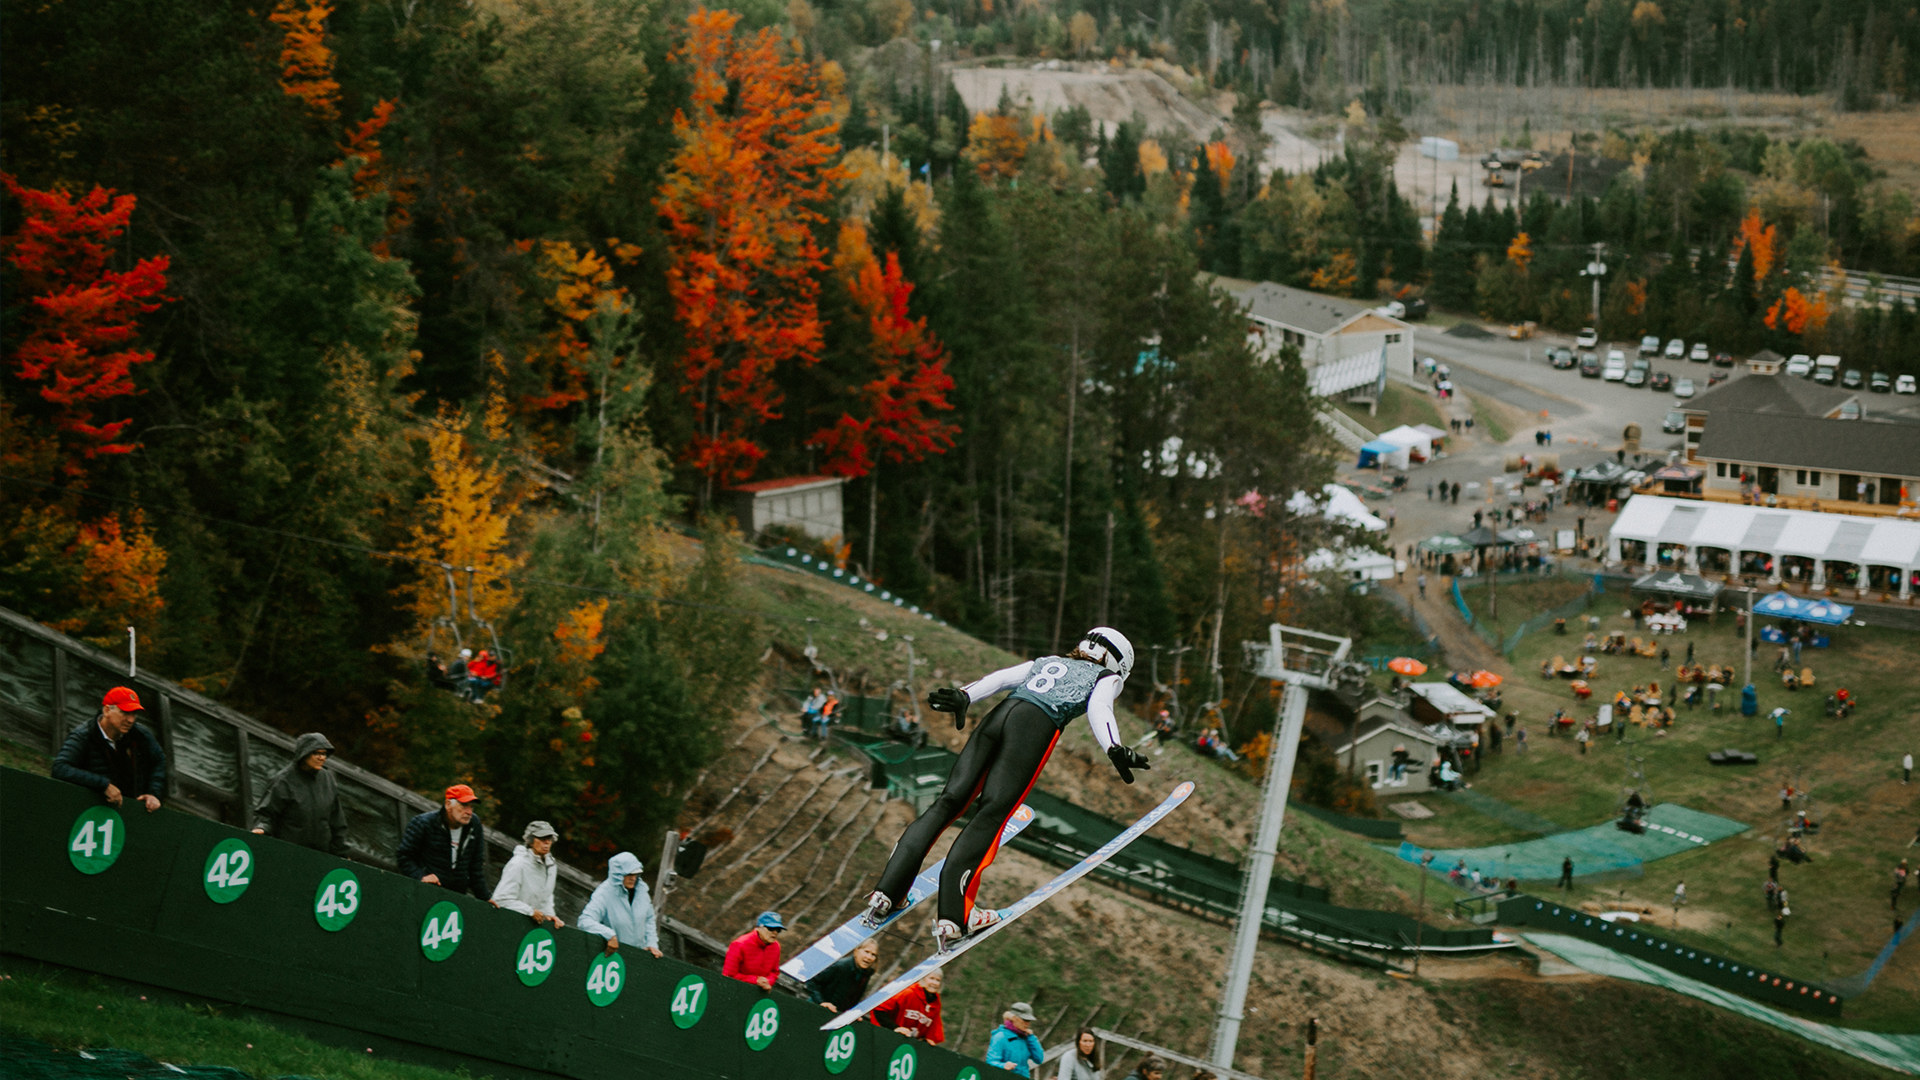 Ski Jumping at the Olympic Jumping Complex